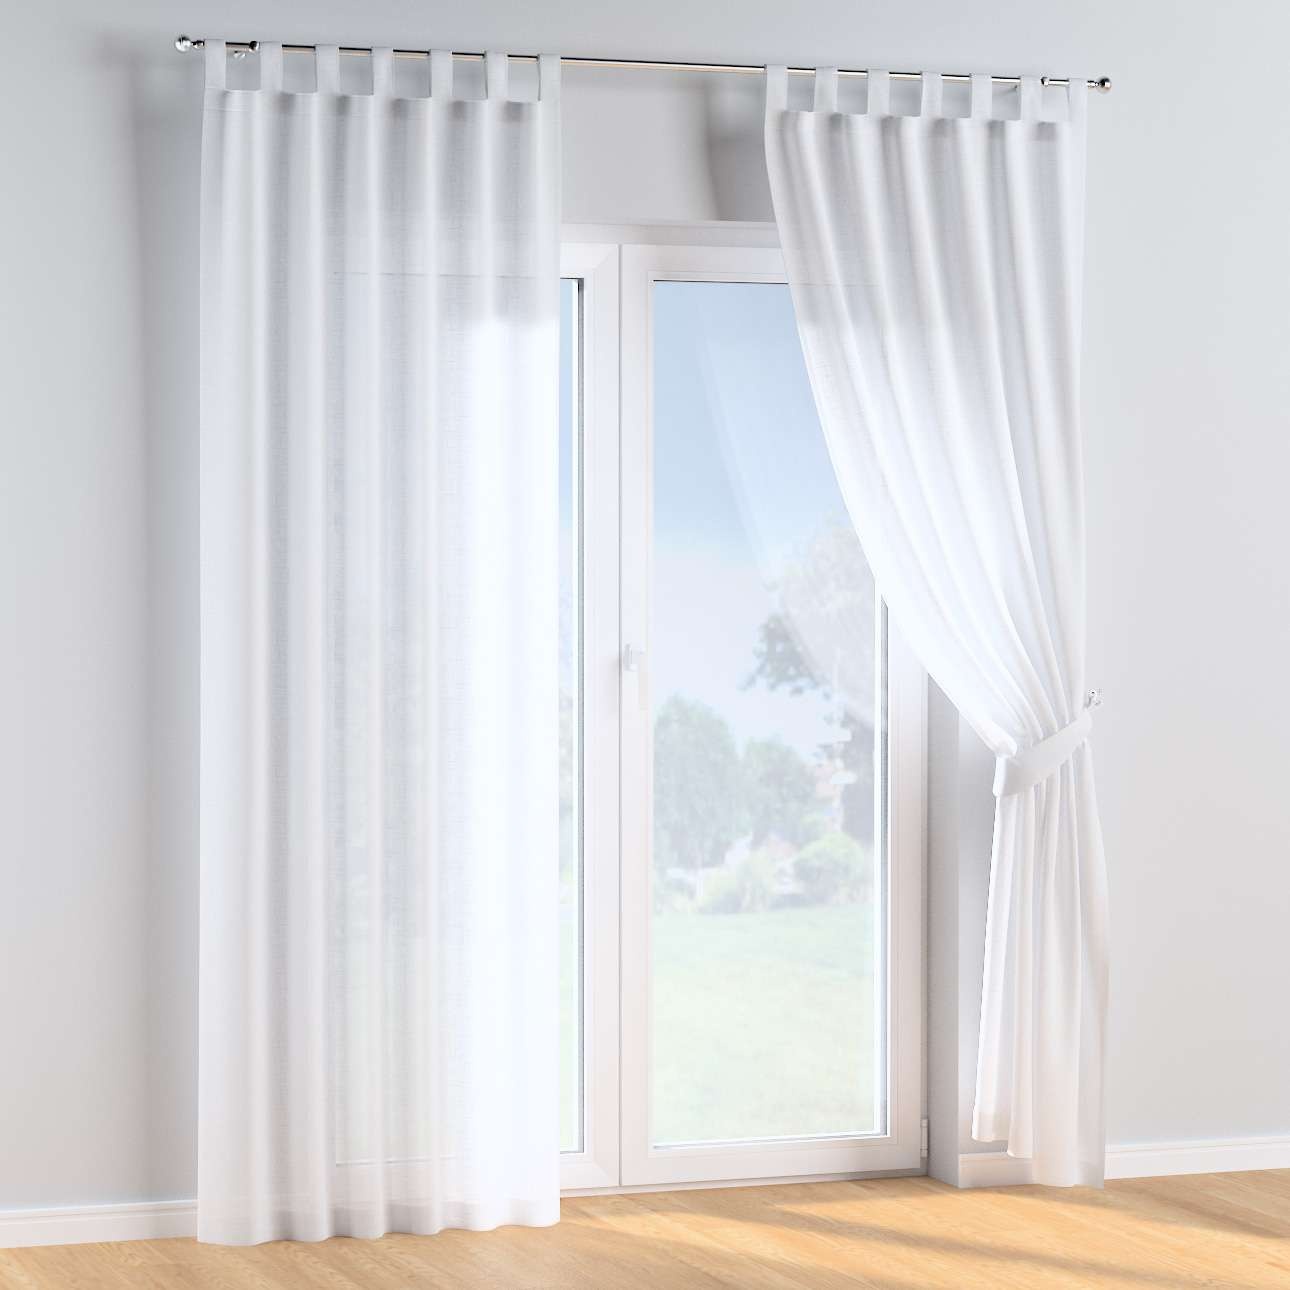 Tab top curtains in collection Sweet Secret, fabric: 128-77